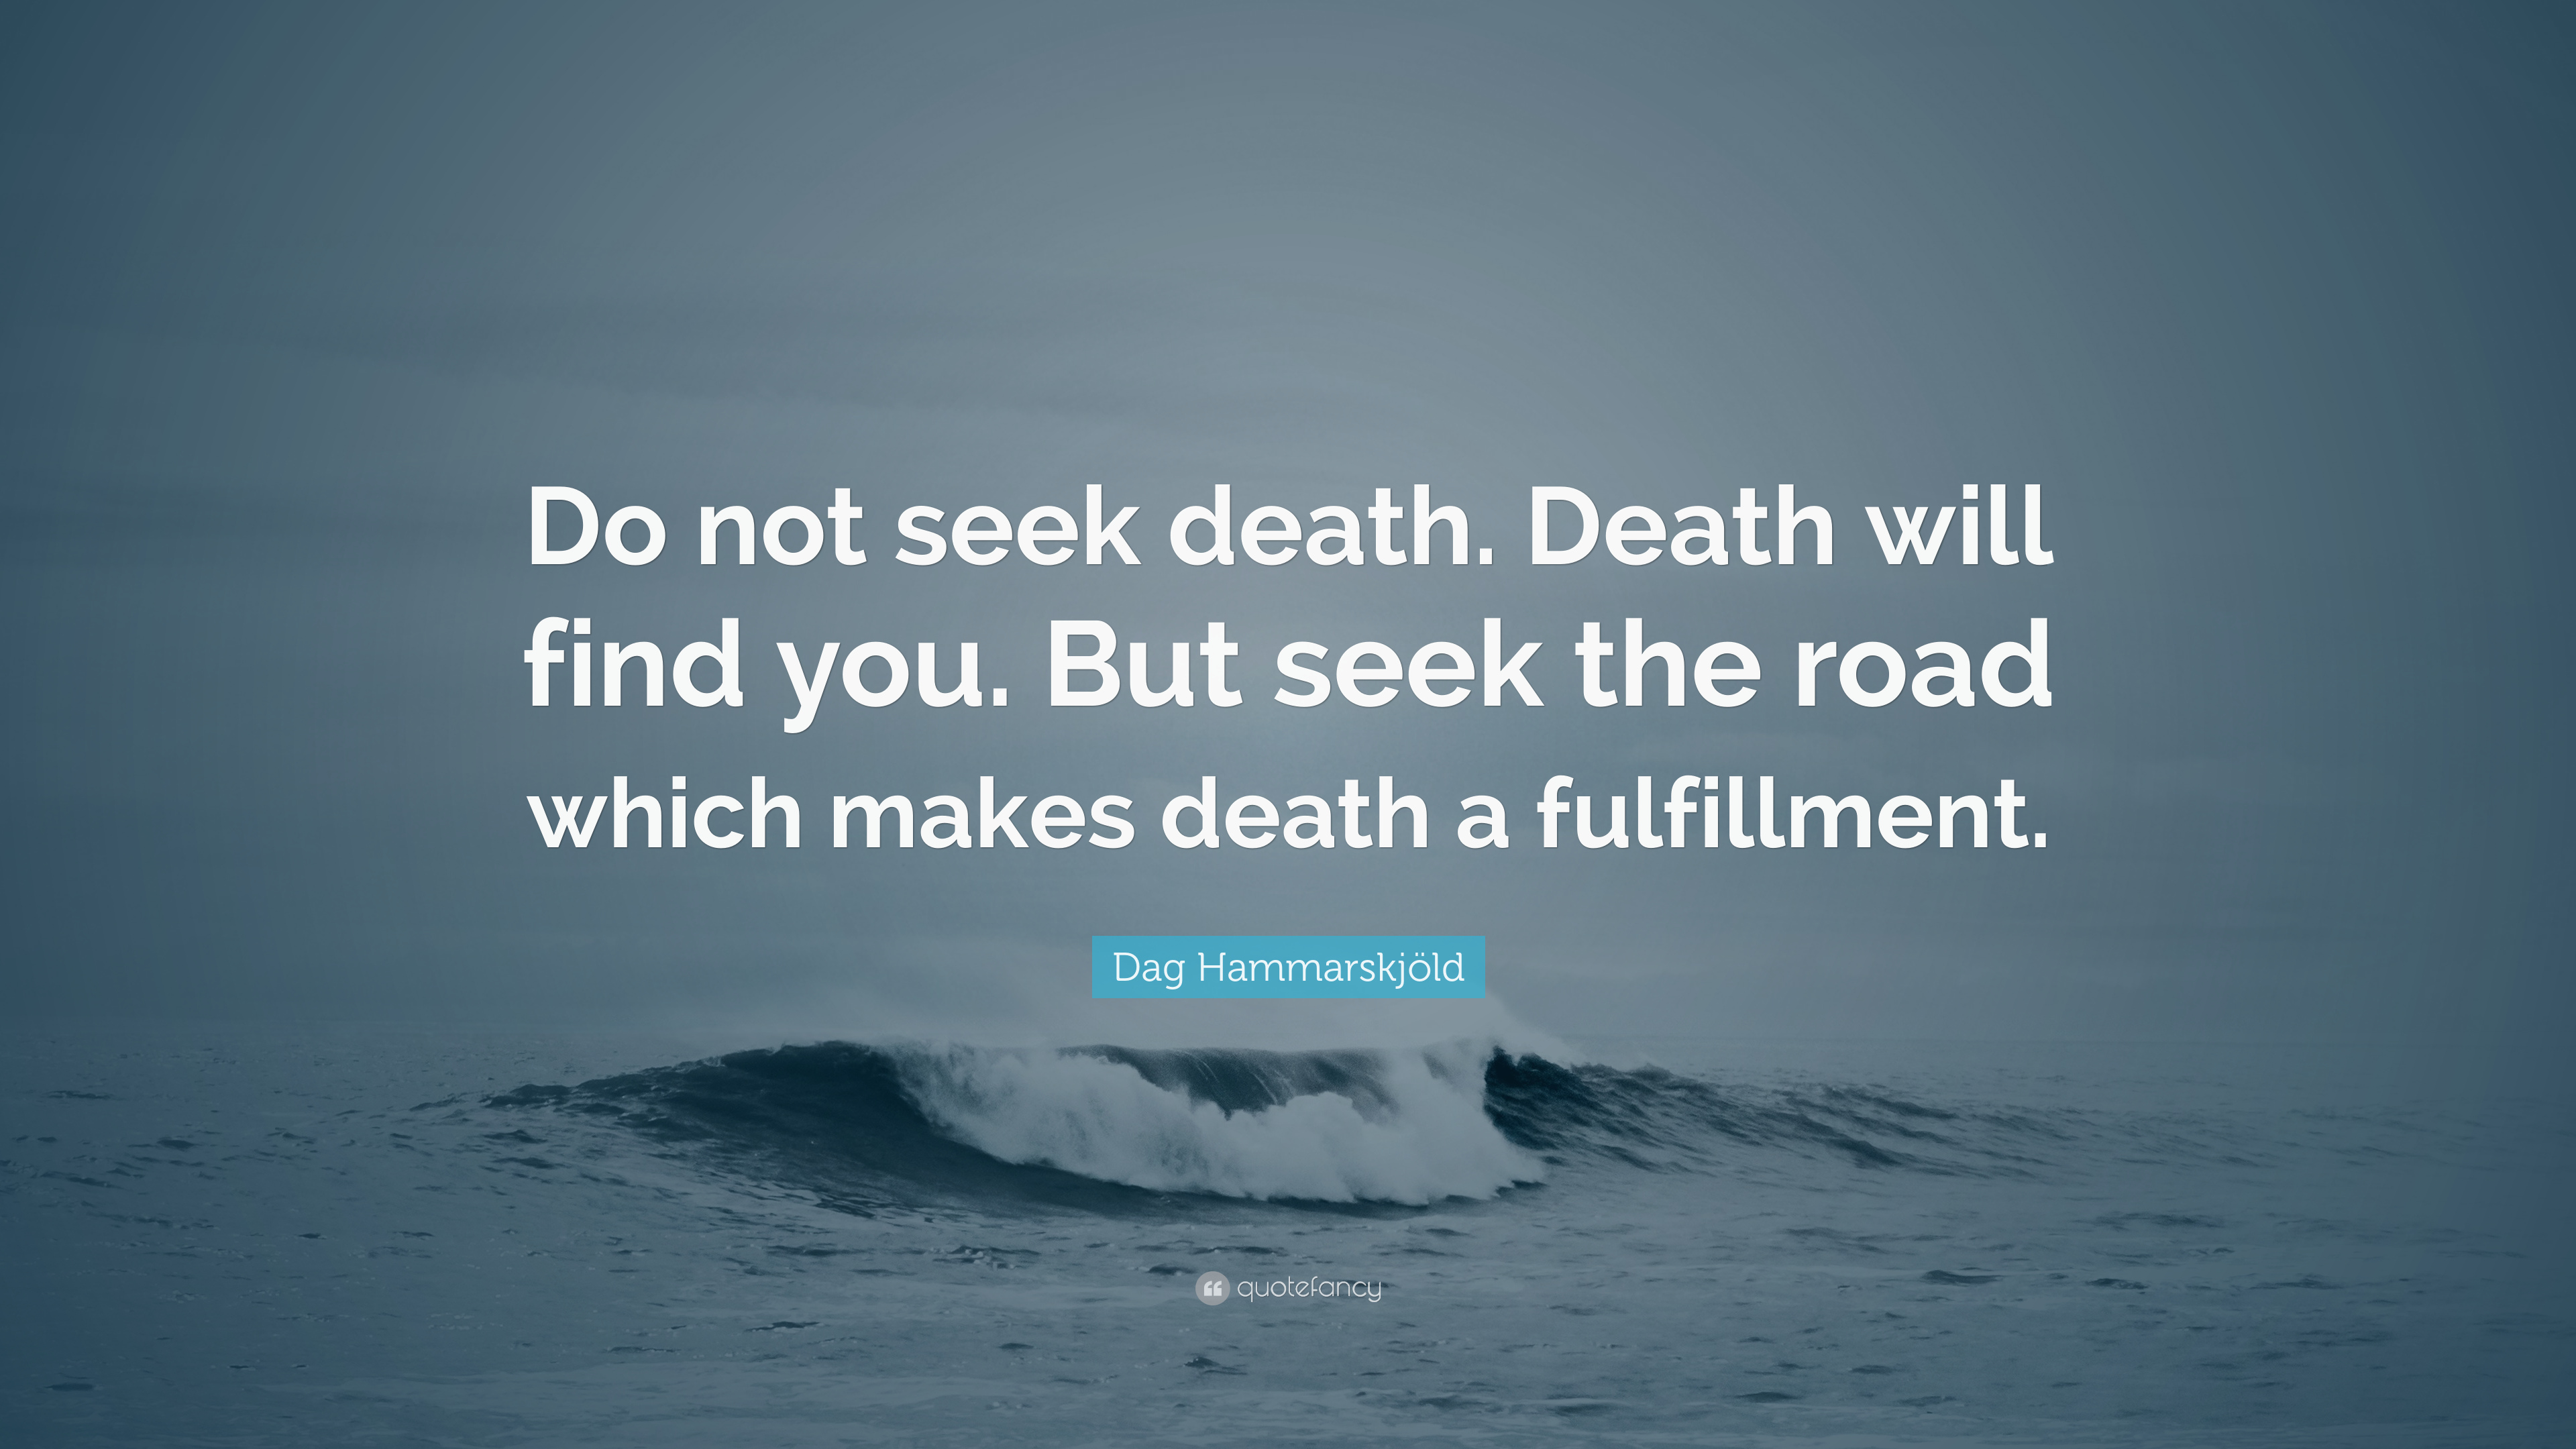 Bon Dag Hammarskjöld Quote: U201cDo Not Seek Death. Death Will Find You. But